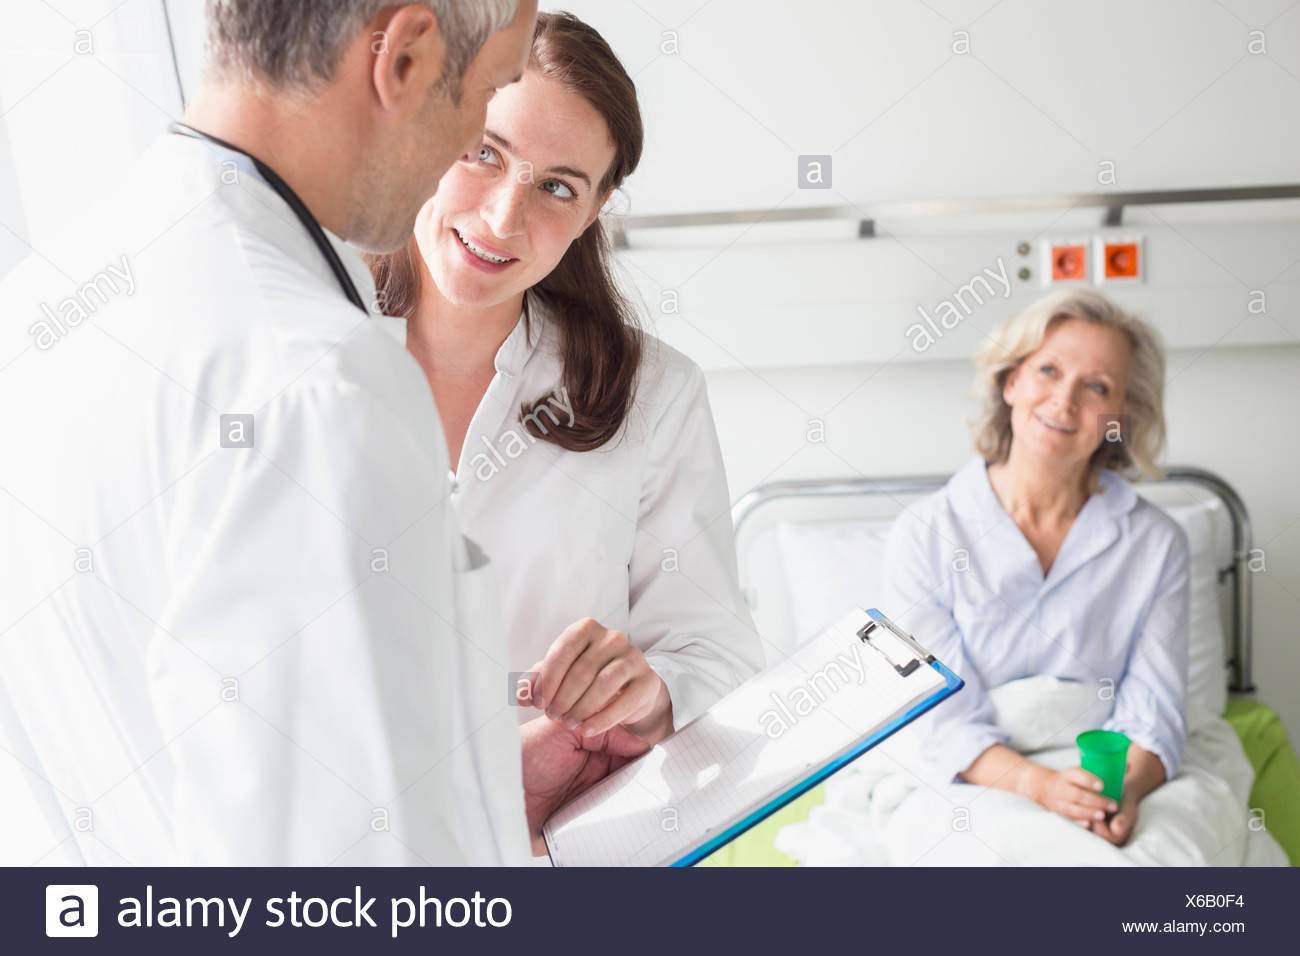 Doctors' visit in hospital - Stock Image